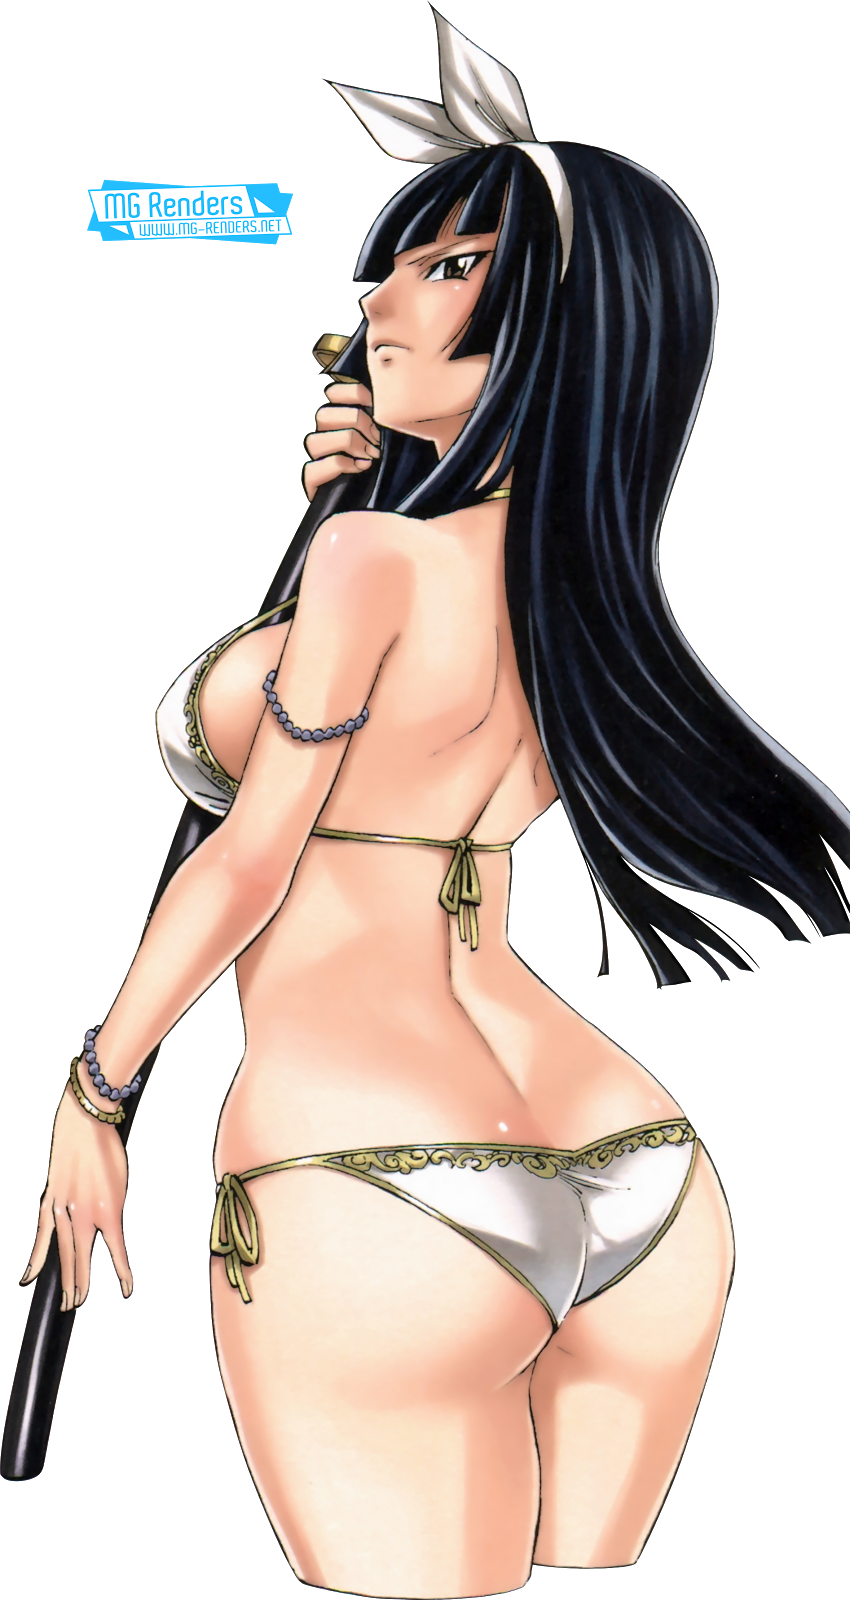 Tags: Anime, Render,  Fairy Tail,  Kagura Mikazuchi,  Looking back,  Mashima Hiro,  PNG, Image, Picture